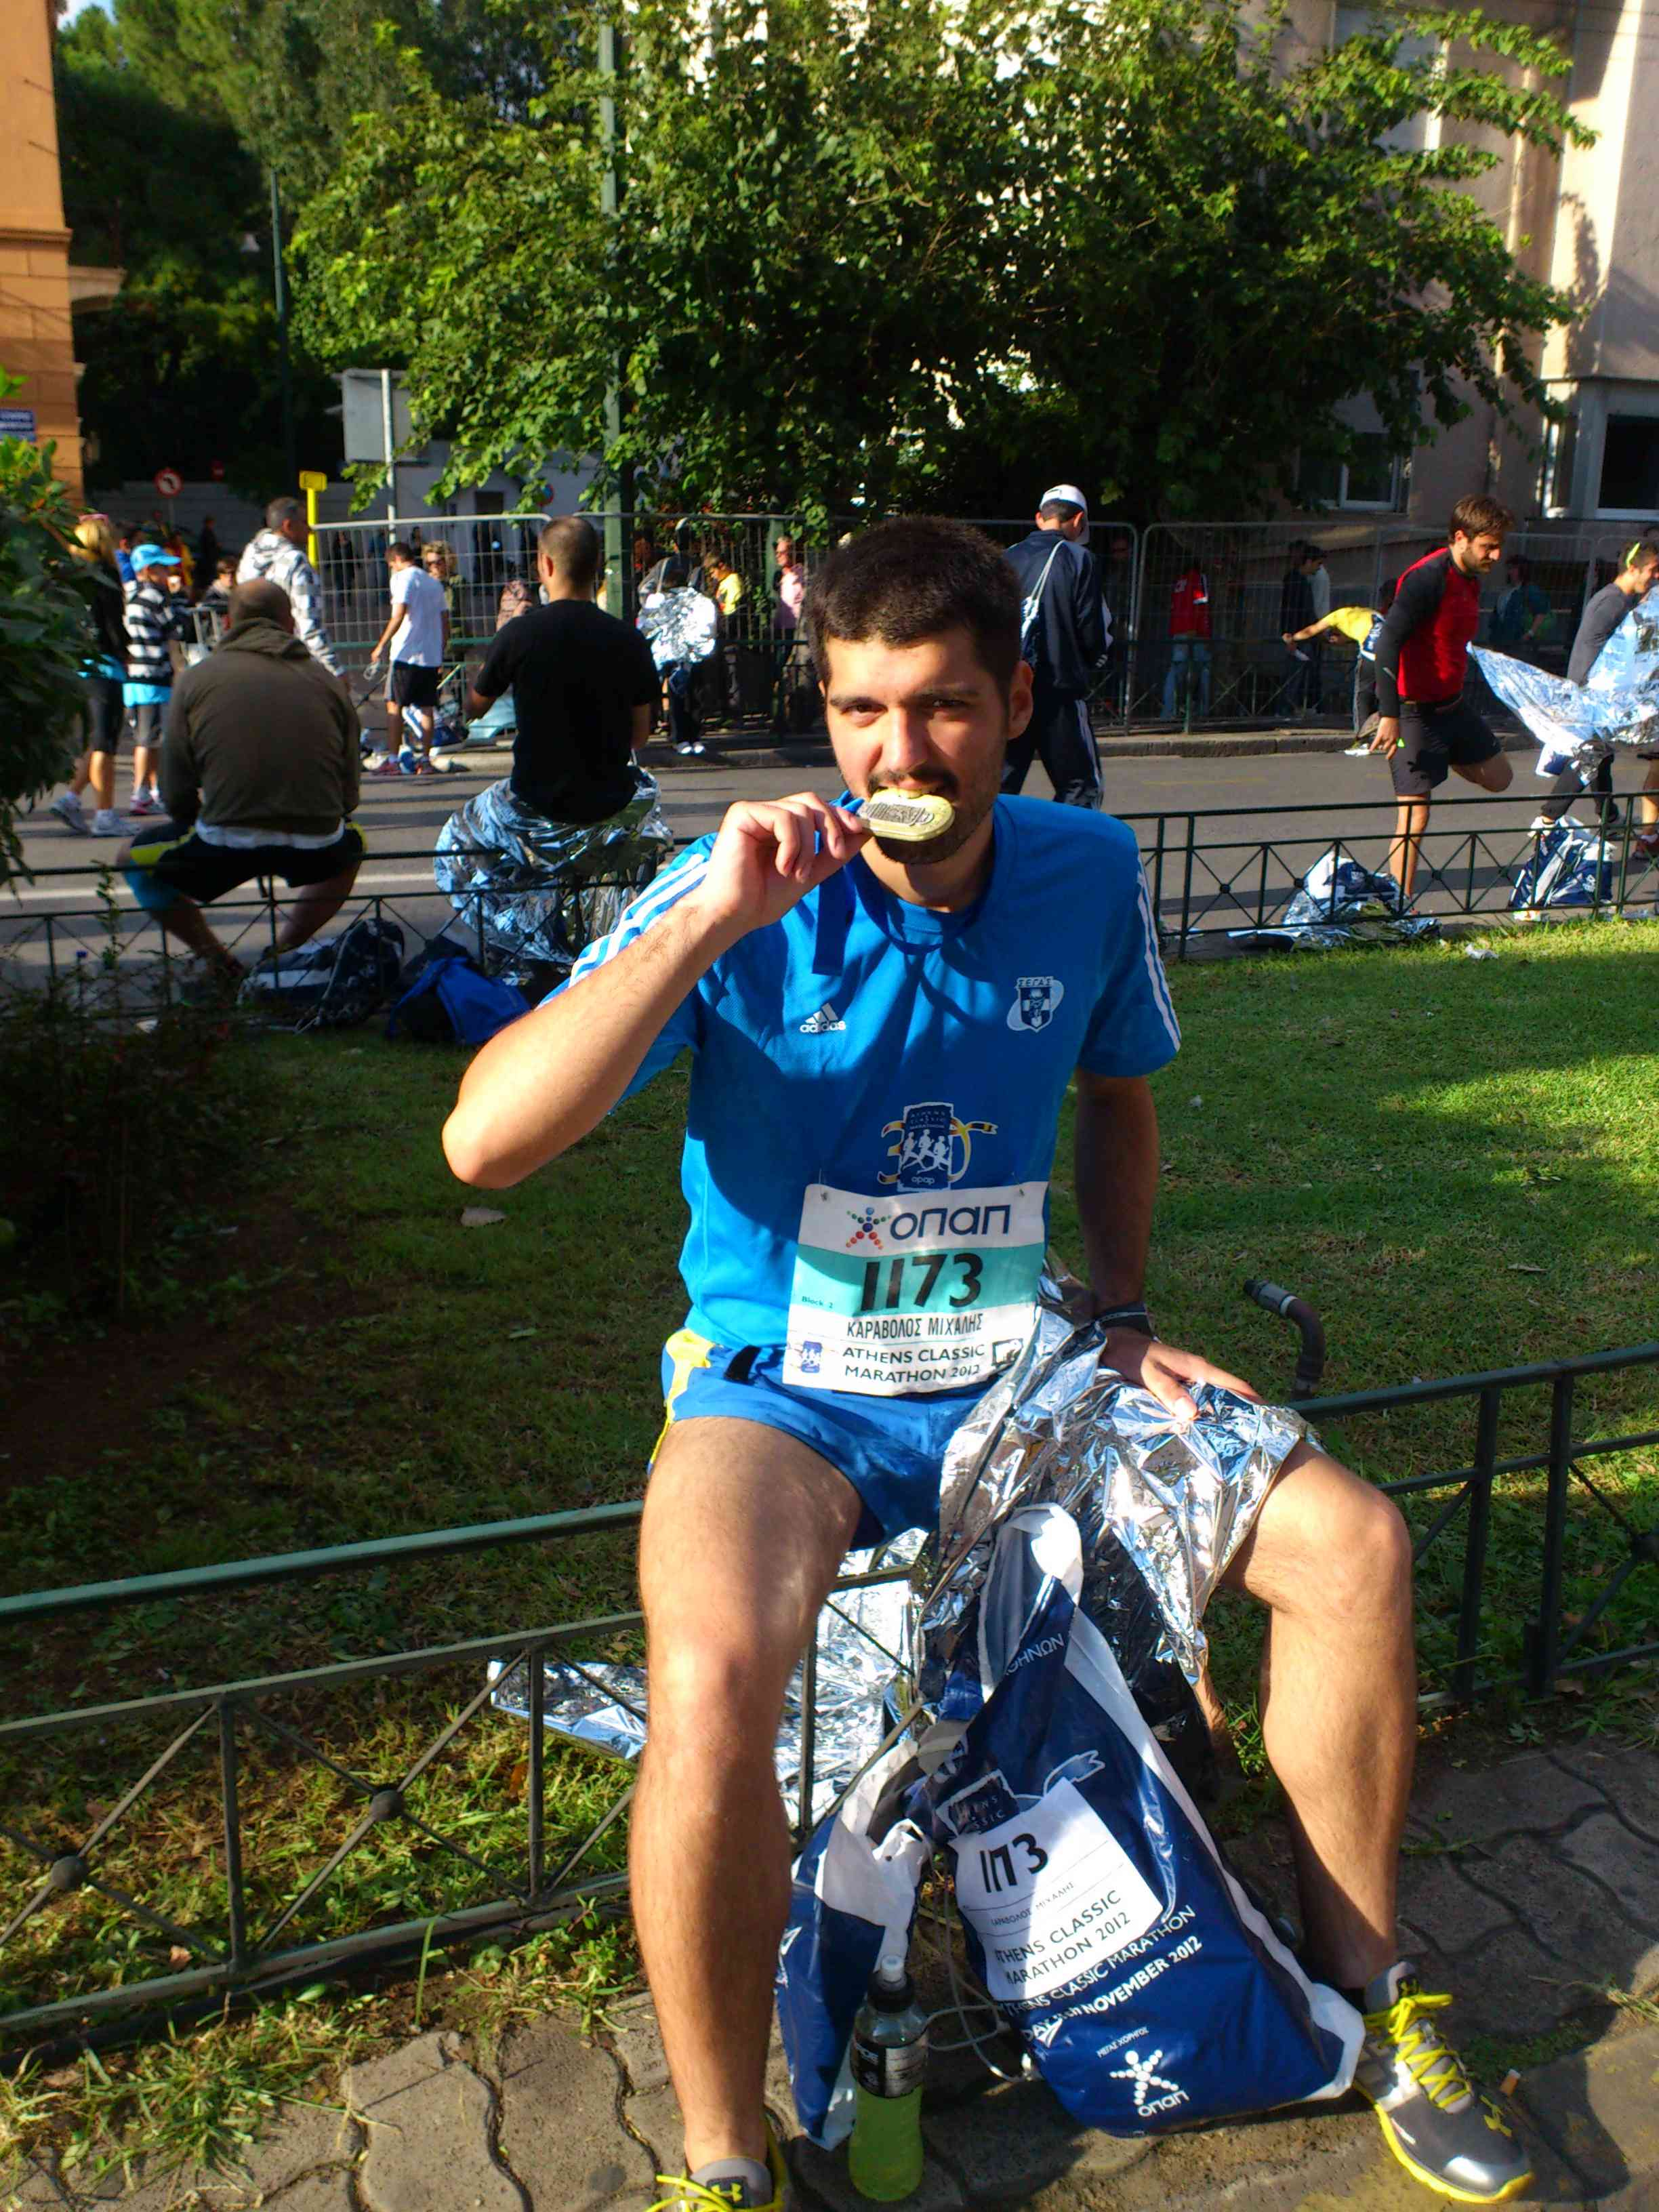 Marathon running finish pic 2012